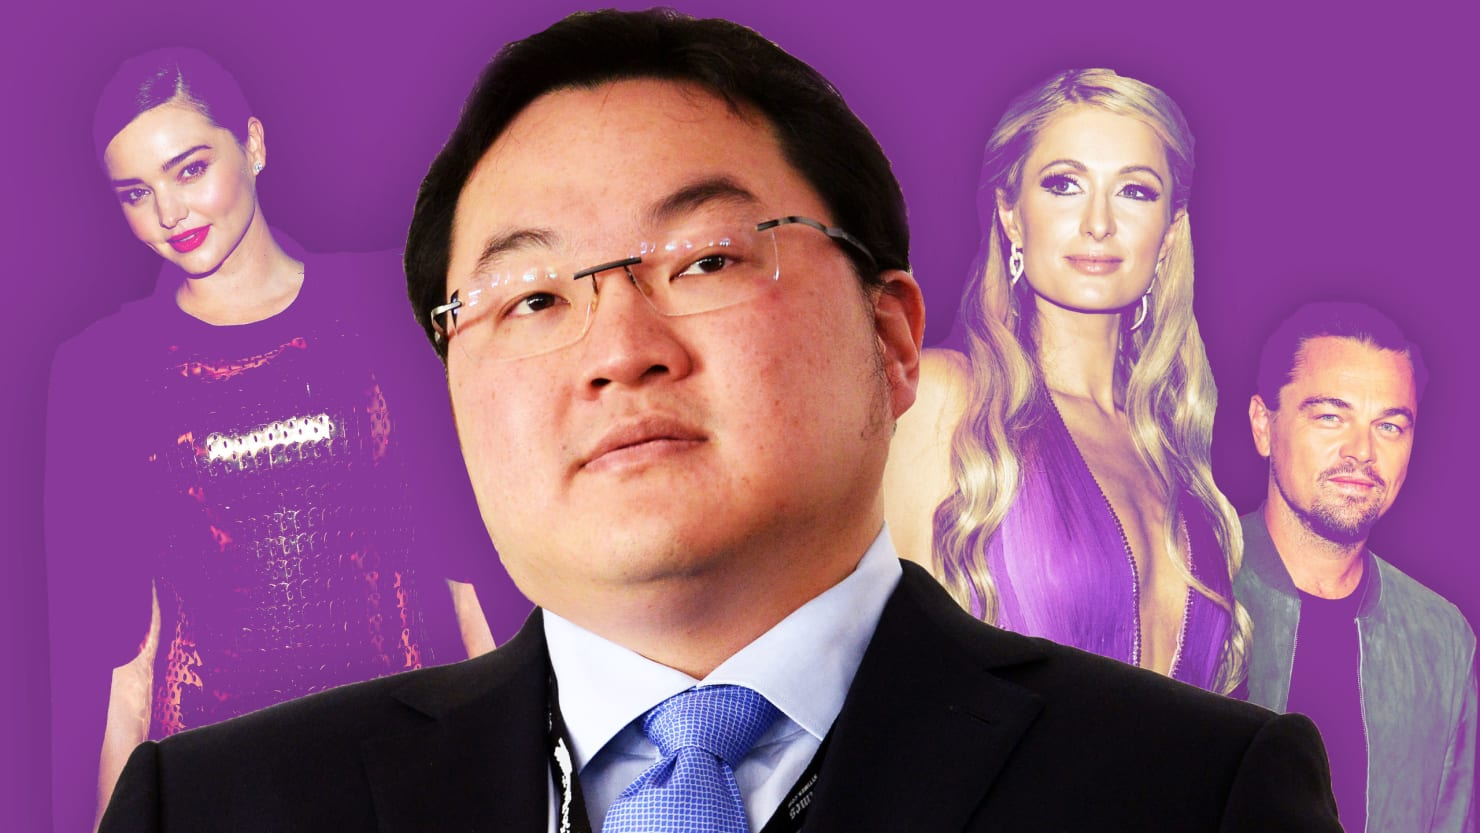 Malaysian Playboy Jho Low's Insane, Celebrity-Heavy Lifestyle Fueled by Stolen Billions, Feds Say